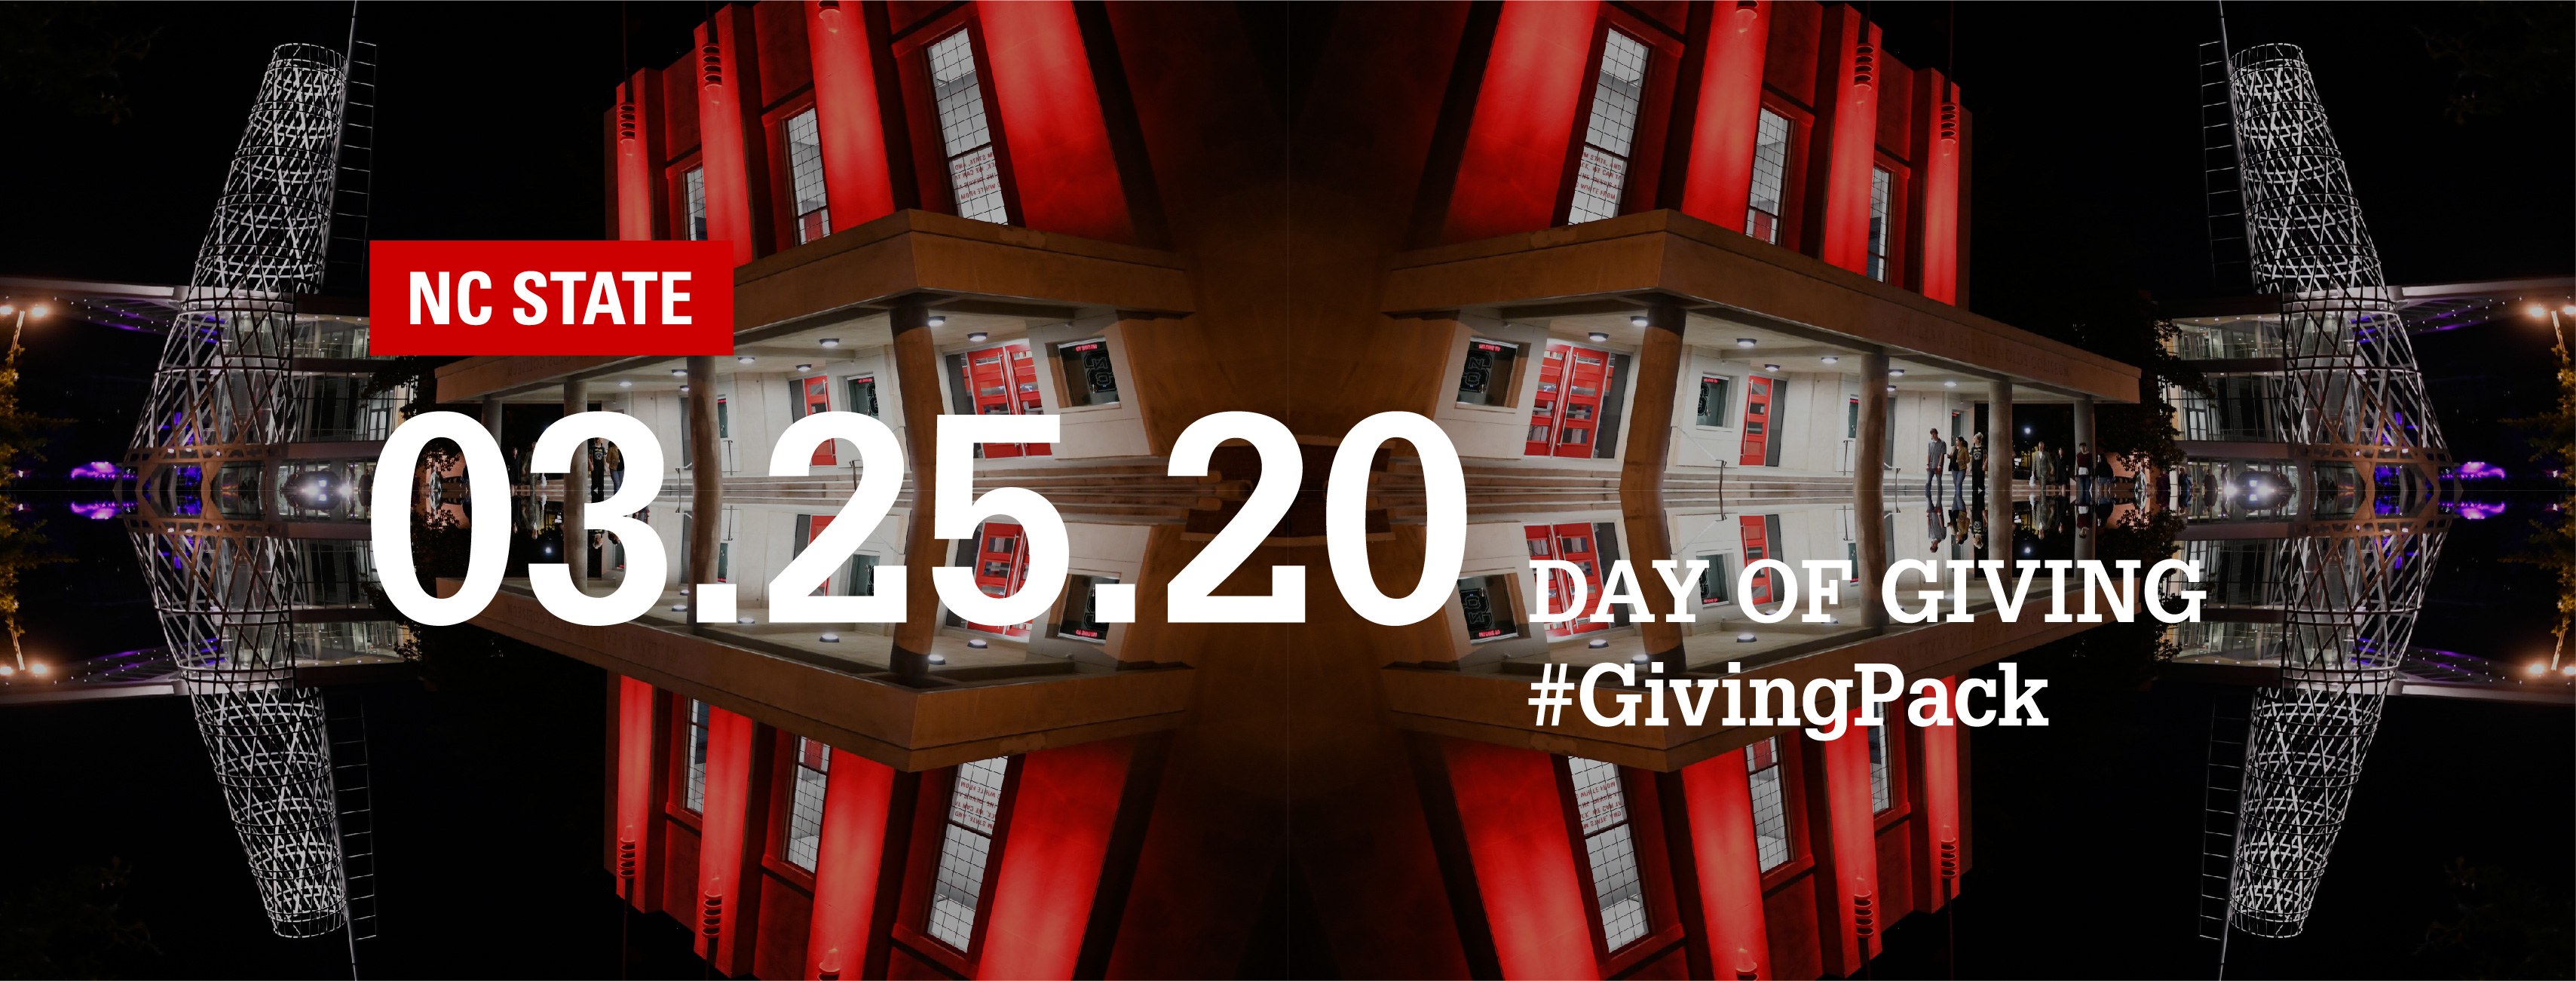 Facebook cover photo with image of Reynolds Coliseum and text reading NC State 03.25.20 Day of Giving Hashtag Giving Pack